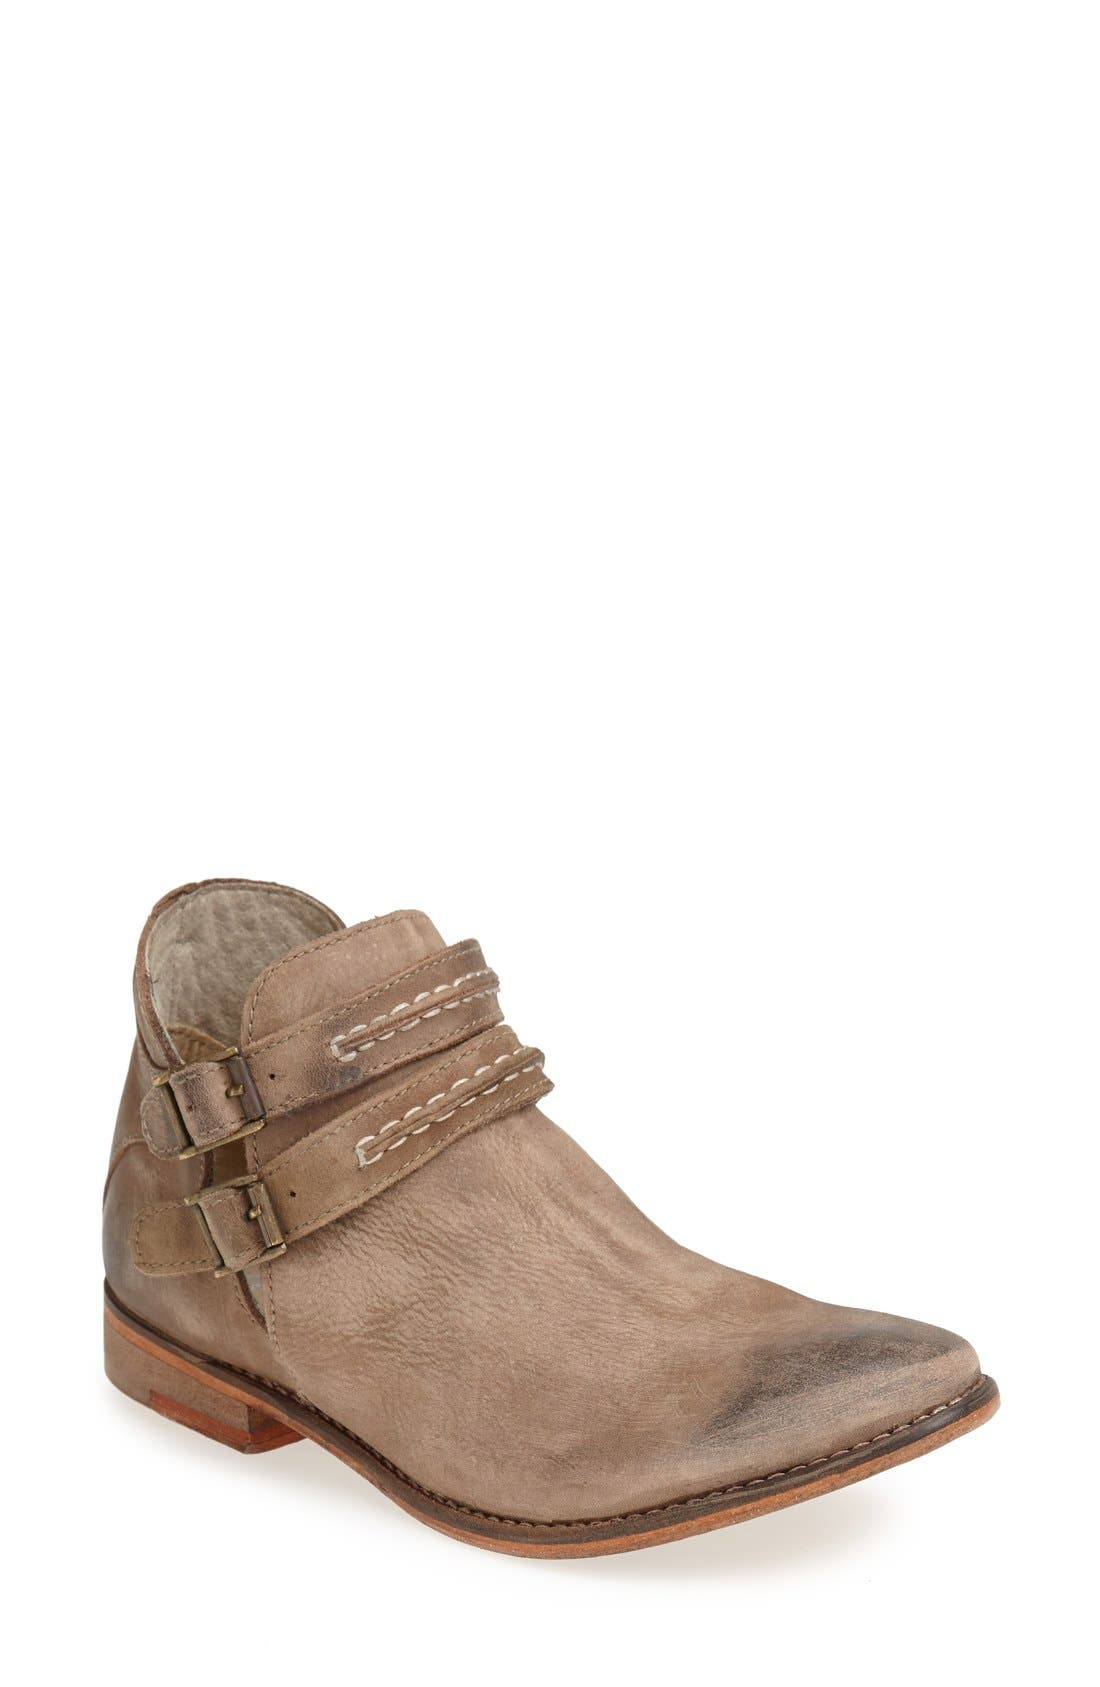 Main Image - Free People 'Braeburn' Belted Split Shaft Bootie (Women)